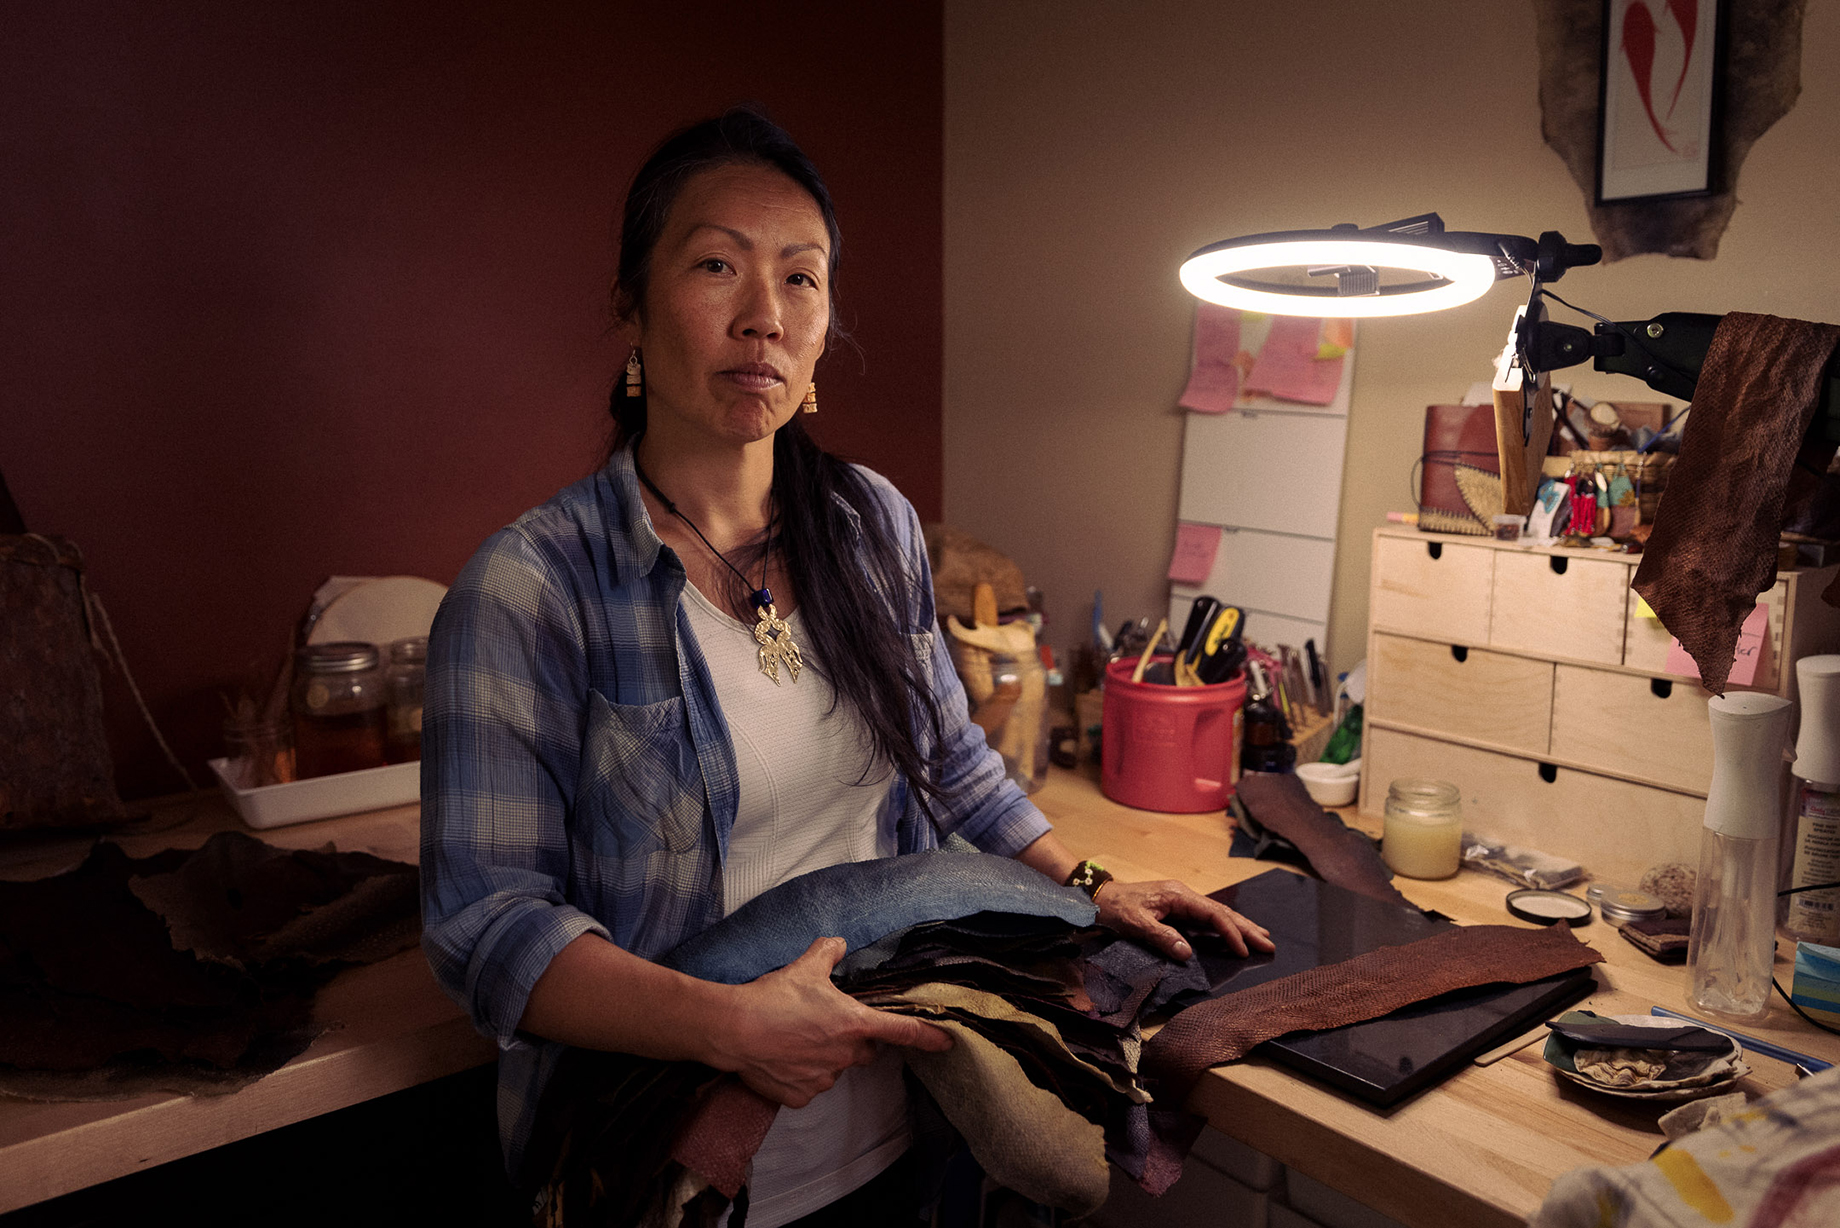 Fish-leather craftswoman Janey at her work table shot by Christian Tisdale for Makers series